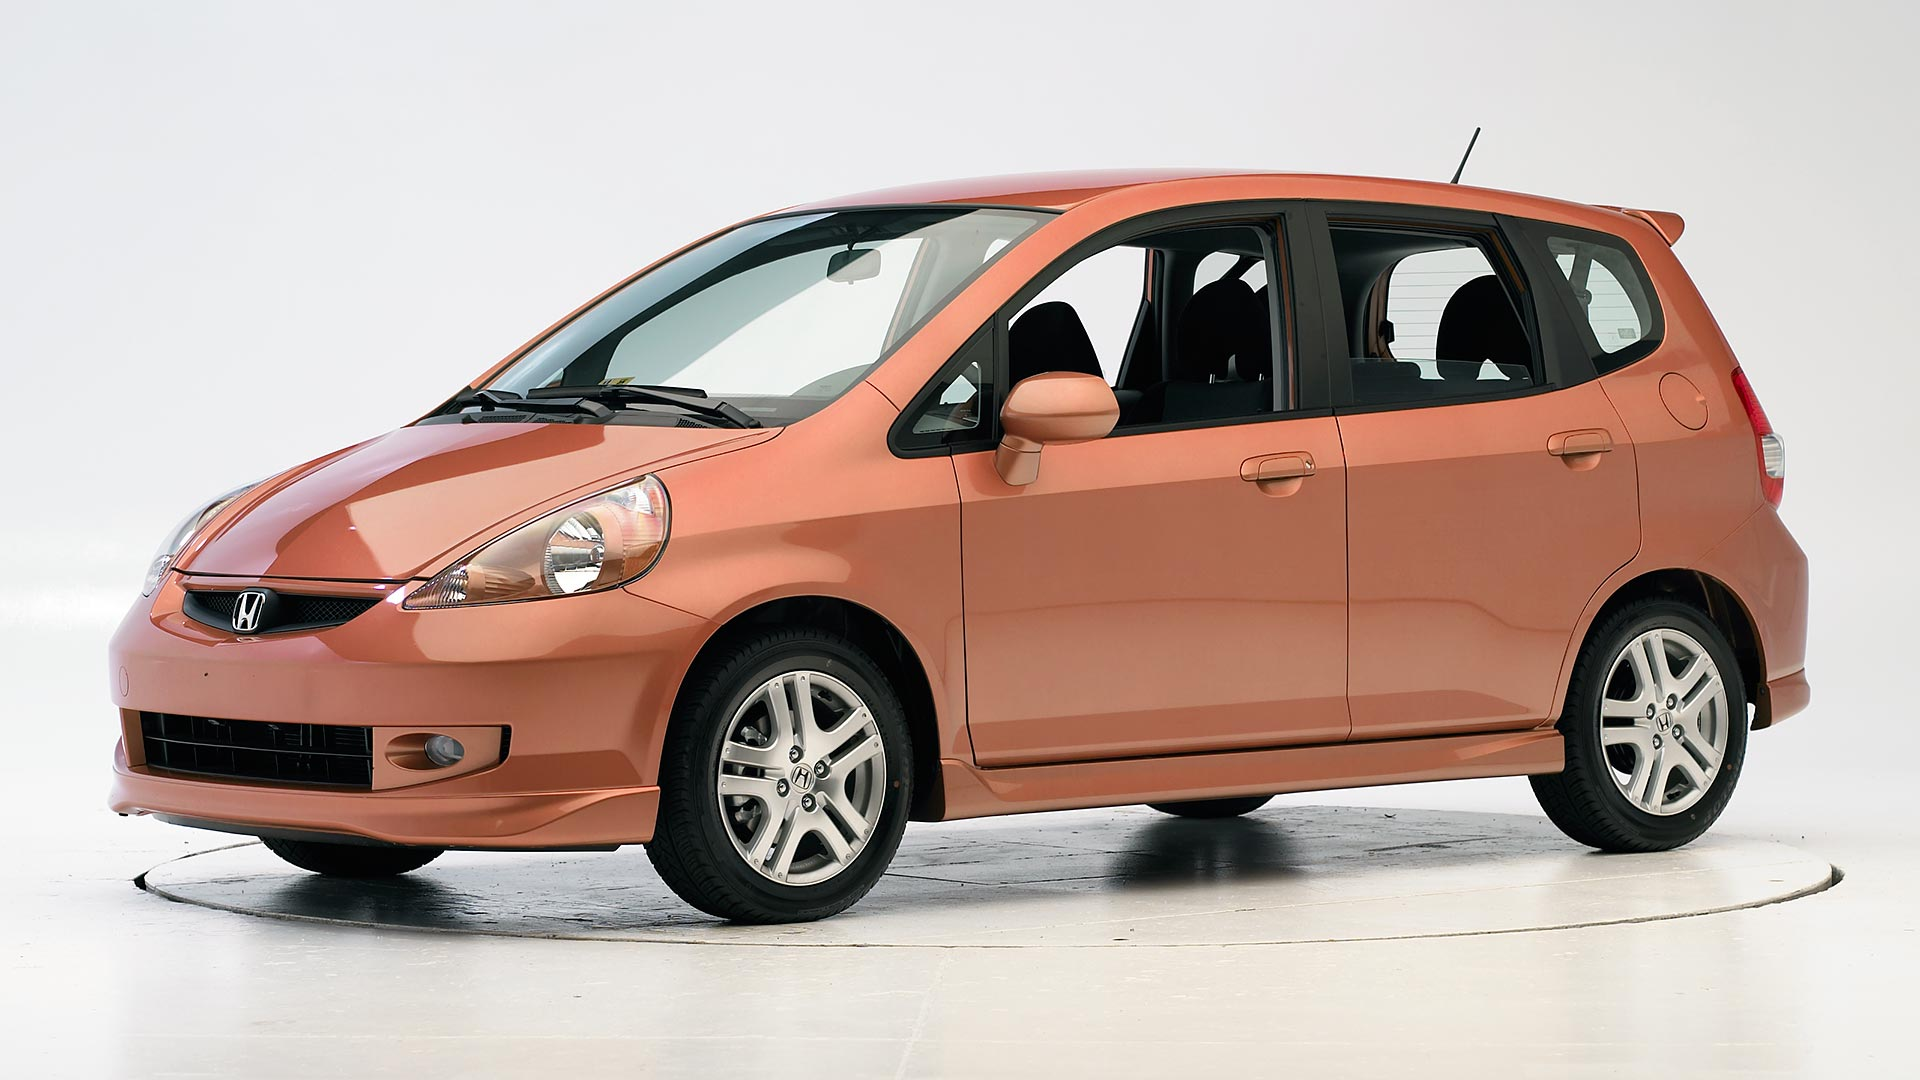 2008 Honda Fit 4-door wagon